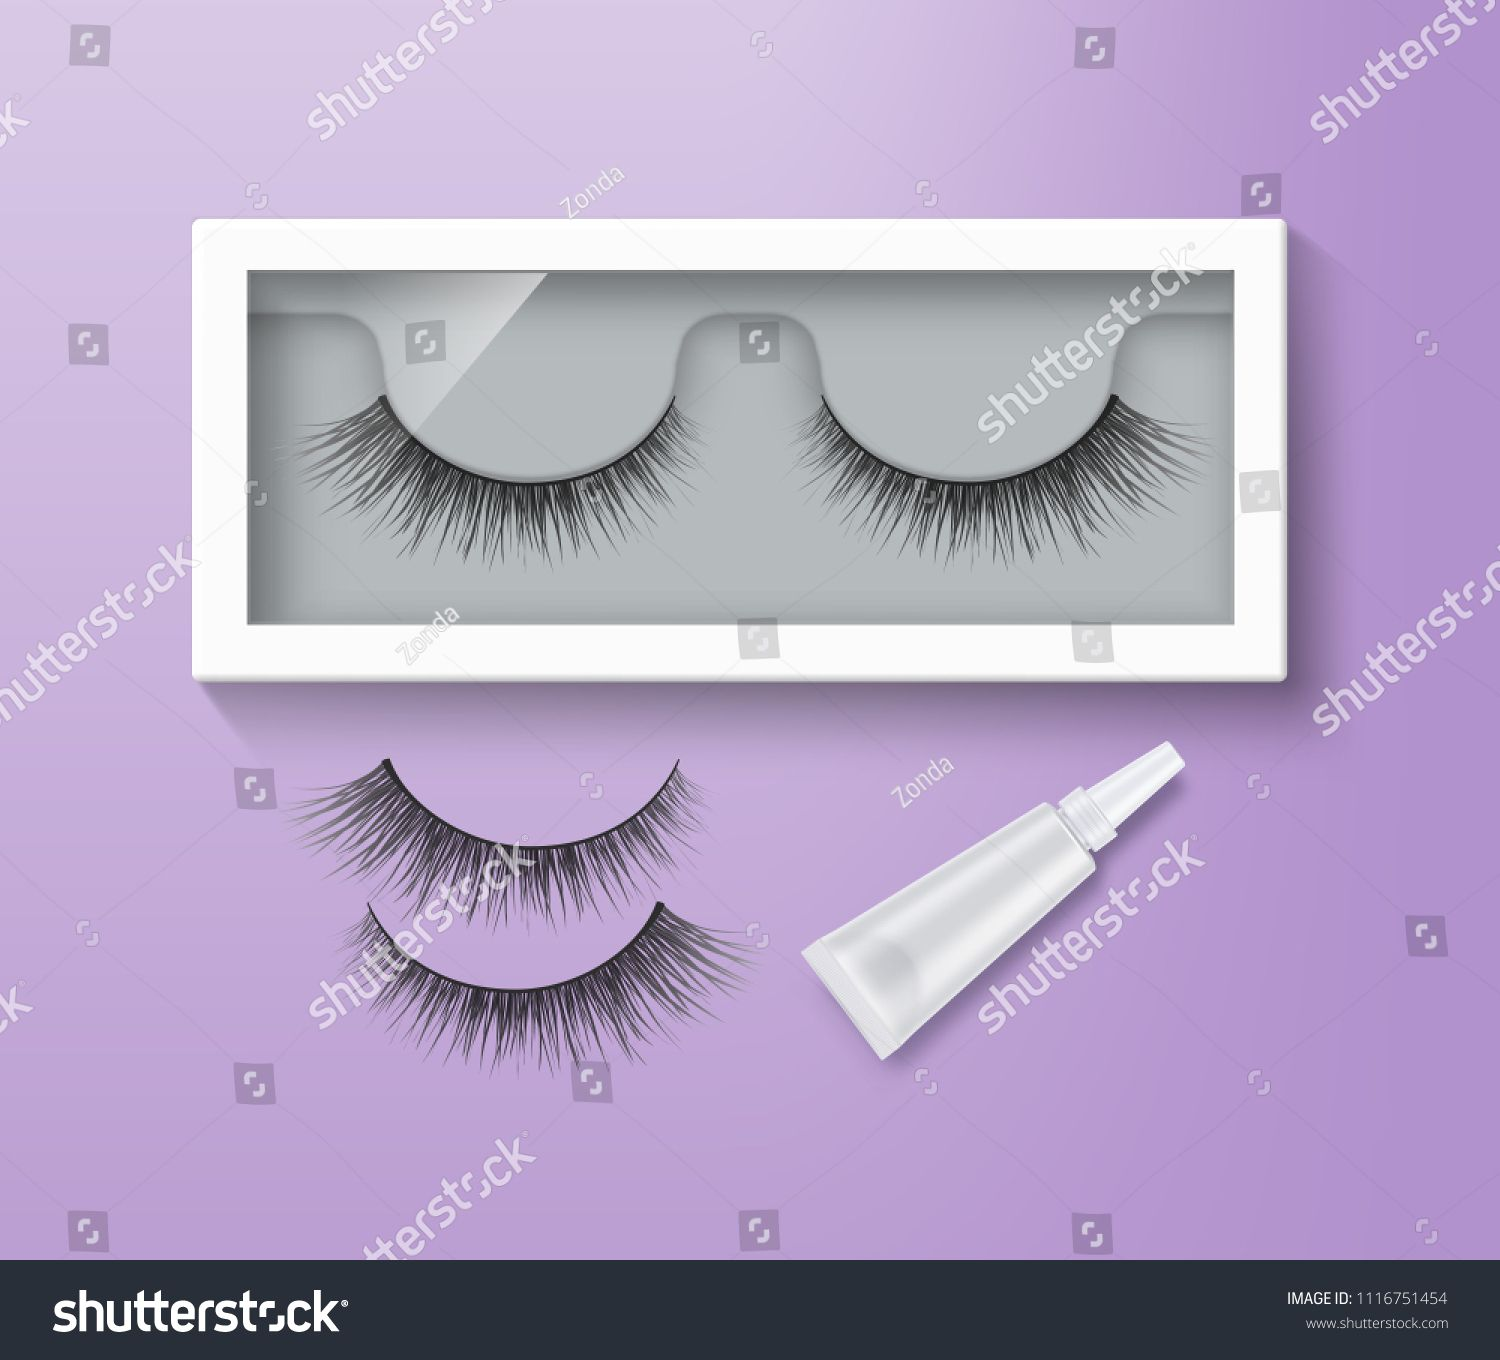 5ca177d7d6e Vector illustration of false eyelashes in packaging and glue tube. Pair of black  long lashes on purple background eyelashes#packaging#glue#Vector